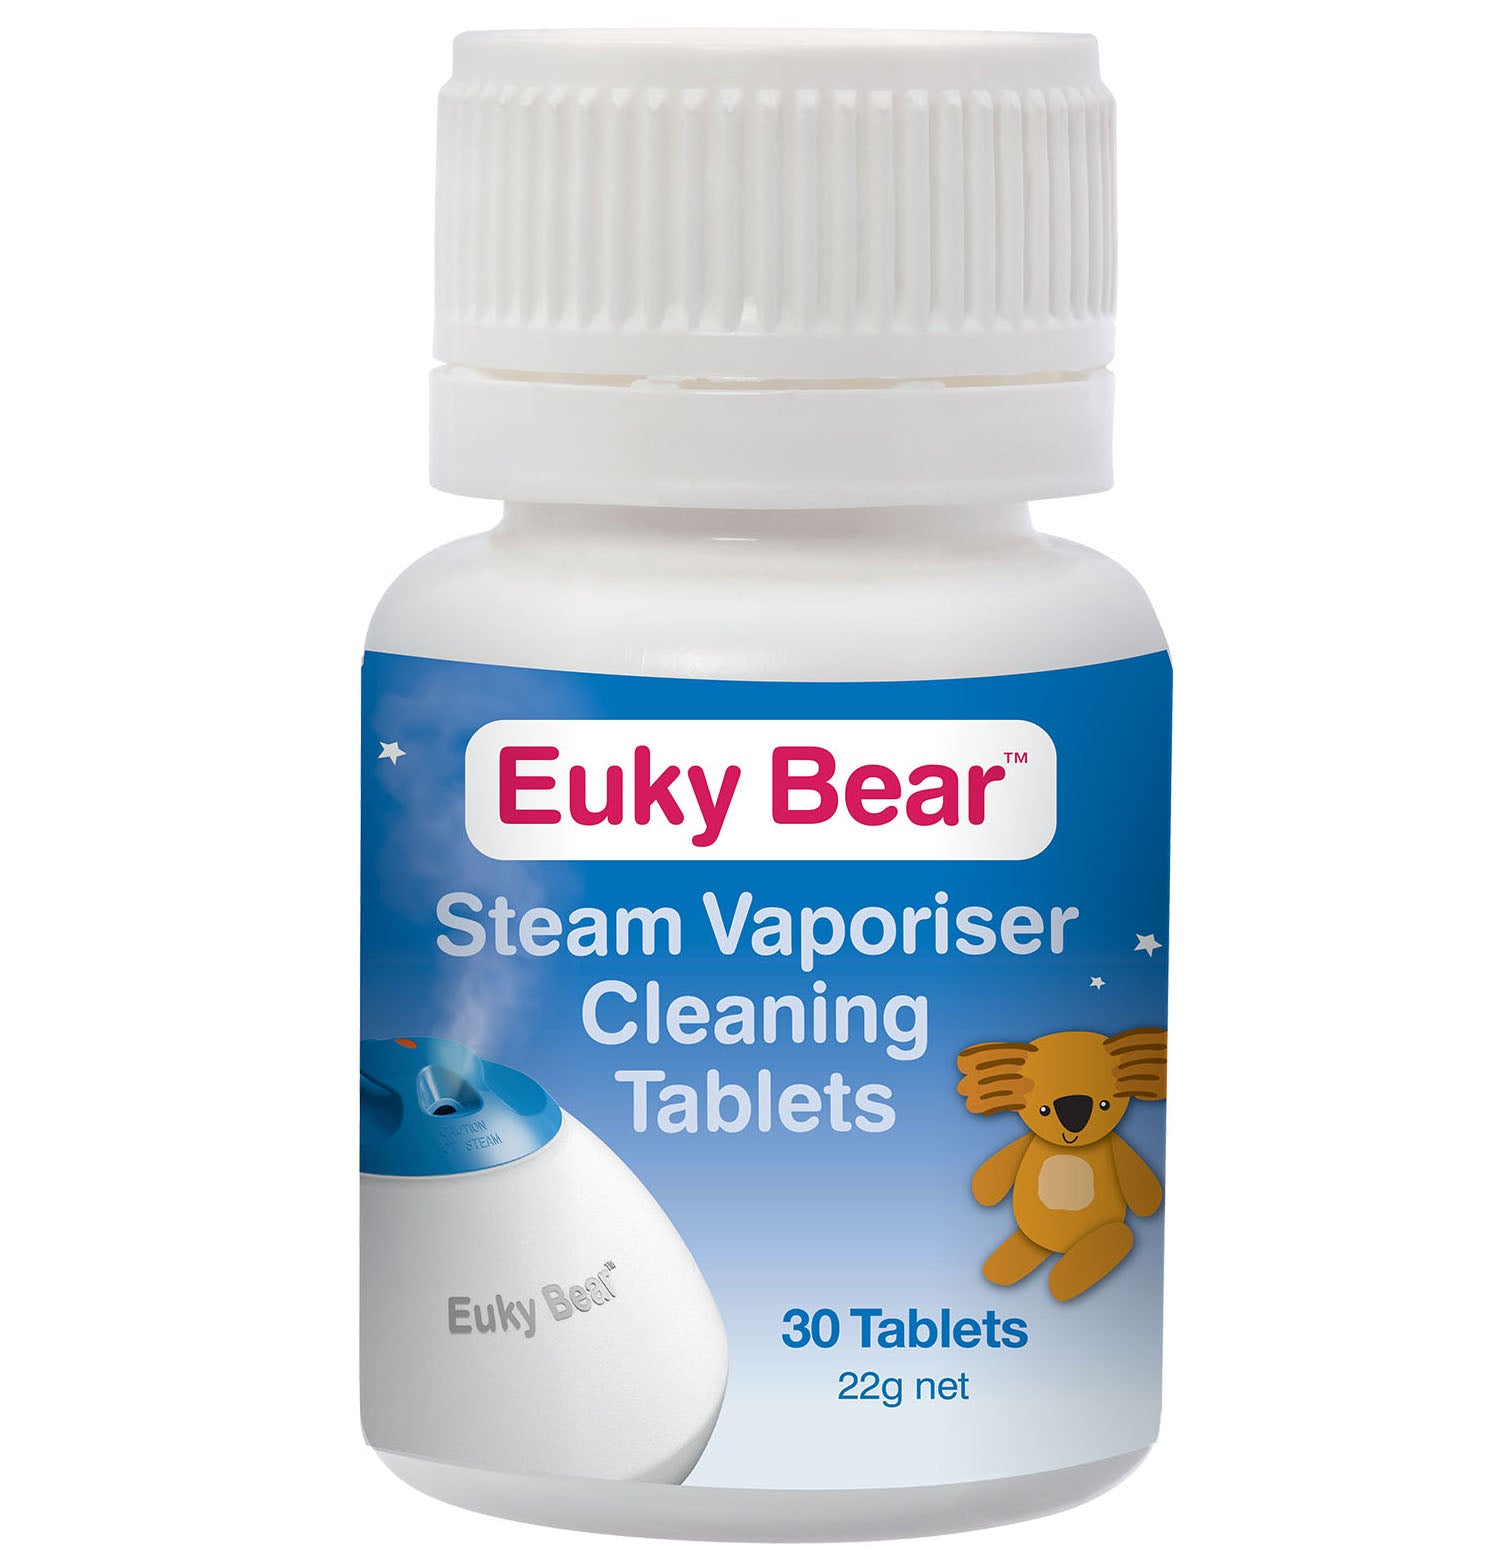 Euky Bear Steam Vaporiser Cleaning Tablets 30s